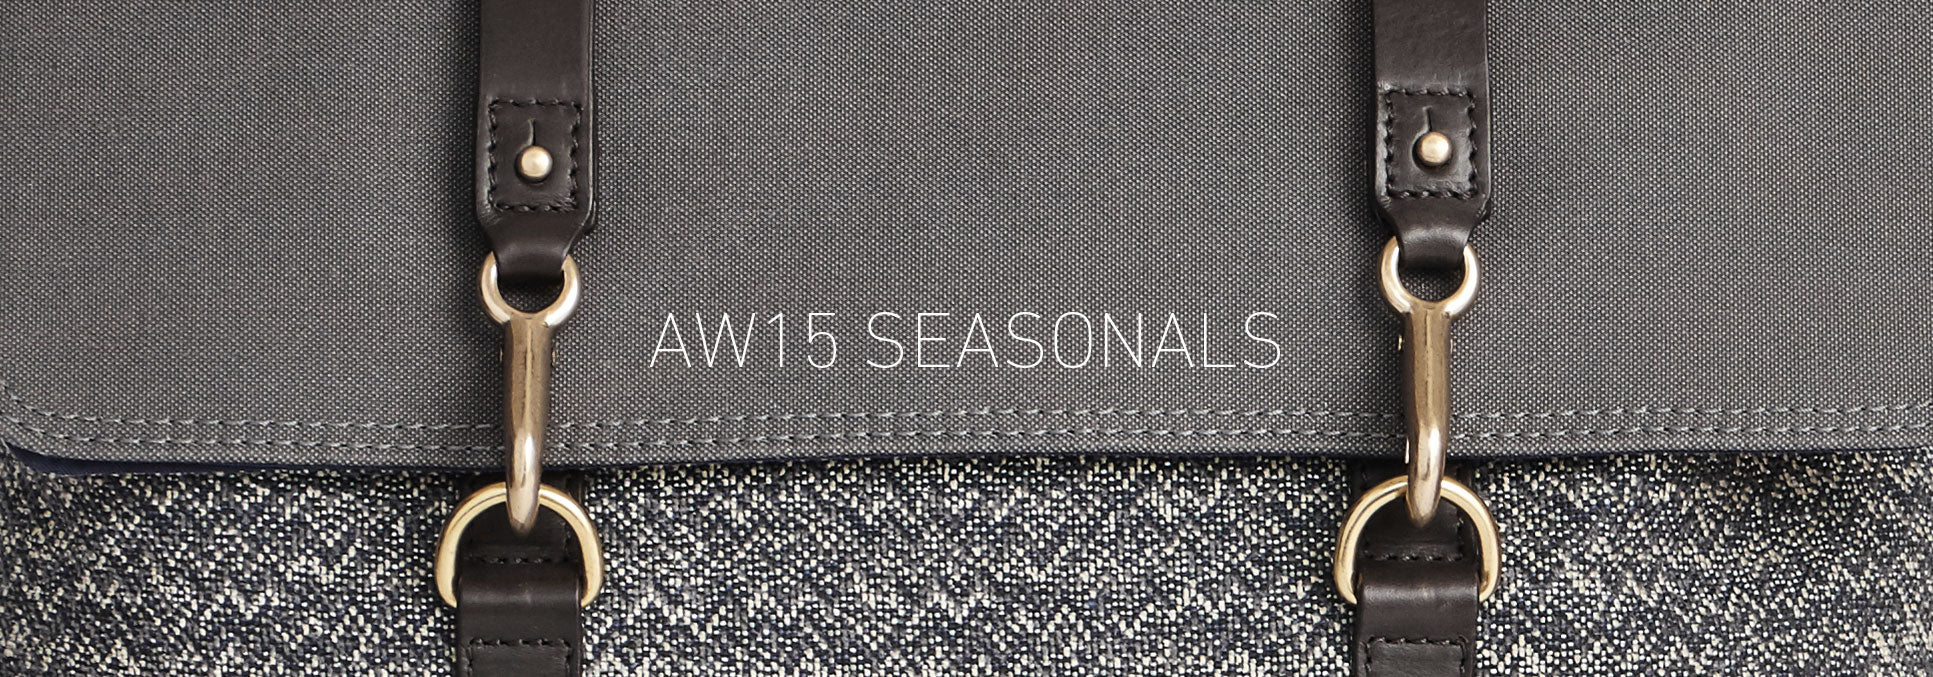 AW15 seasonal collection